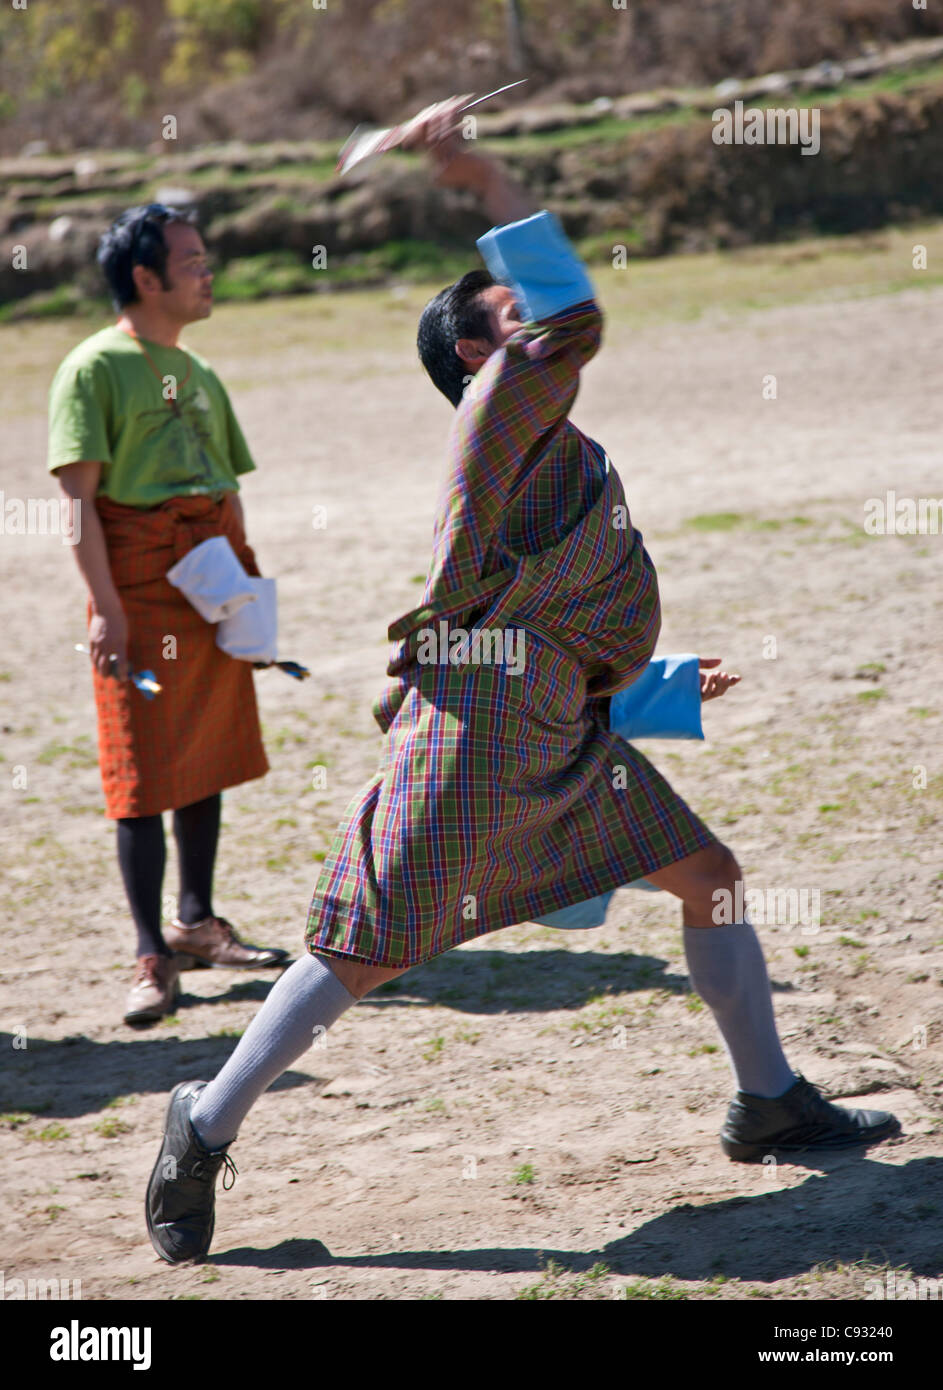 A man throws darts in a Khuru competition, which is a national sport in Bhutan. - Stock Image